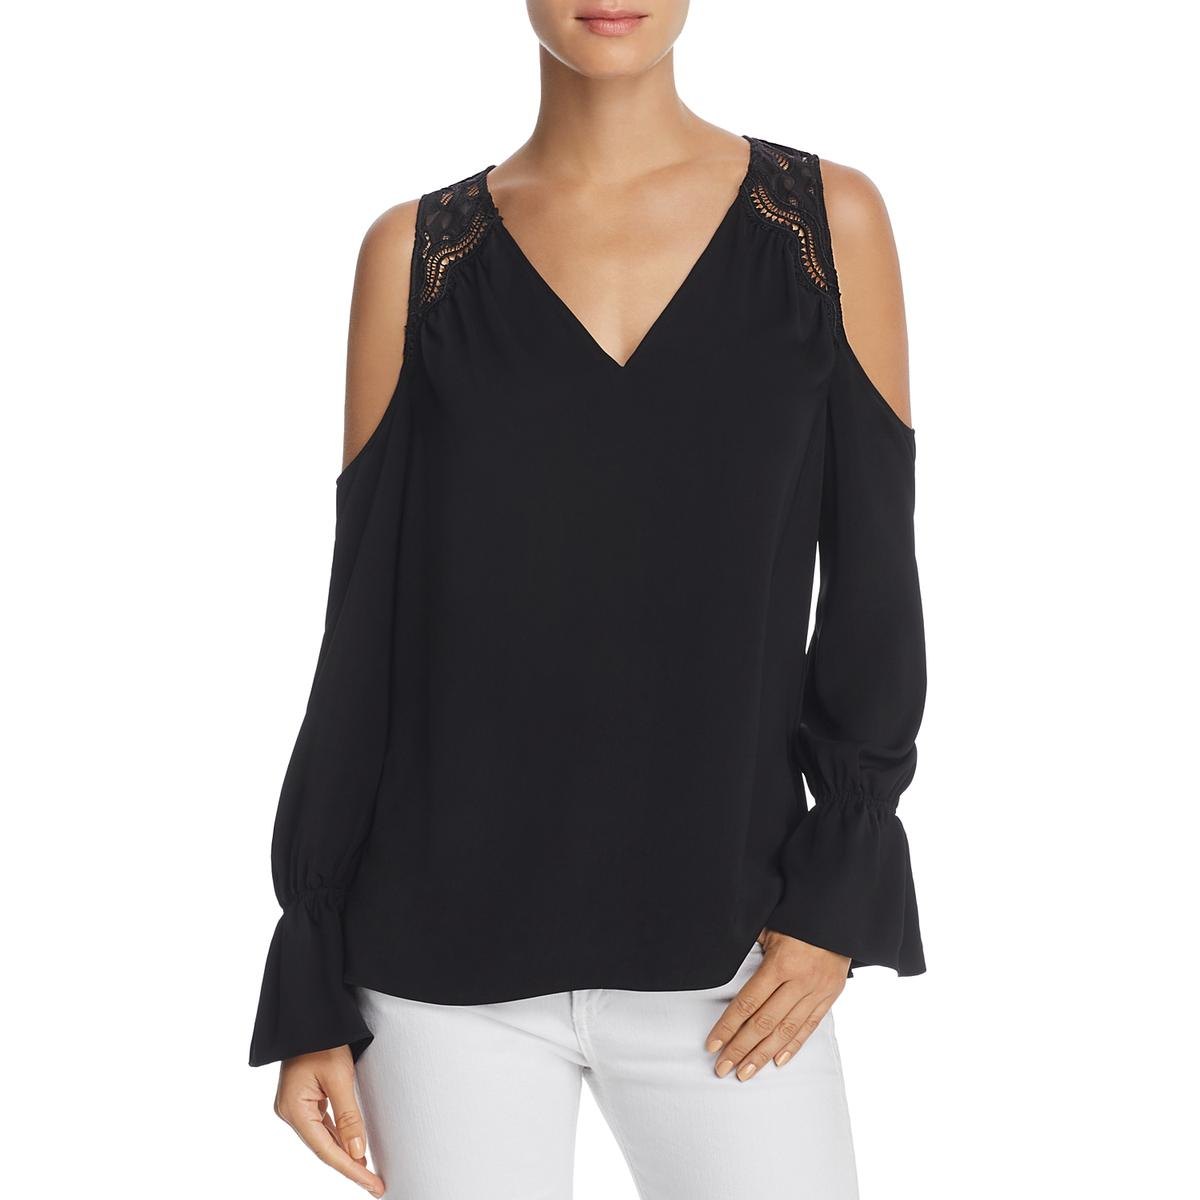 ef1c1a1146212 Details about Ramy Brook Womens Abigail Lace Cold Shoulder V-Neck Blouse Top  BHFO 8523